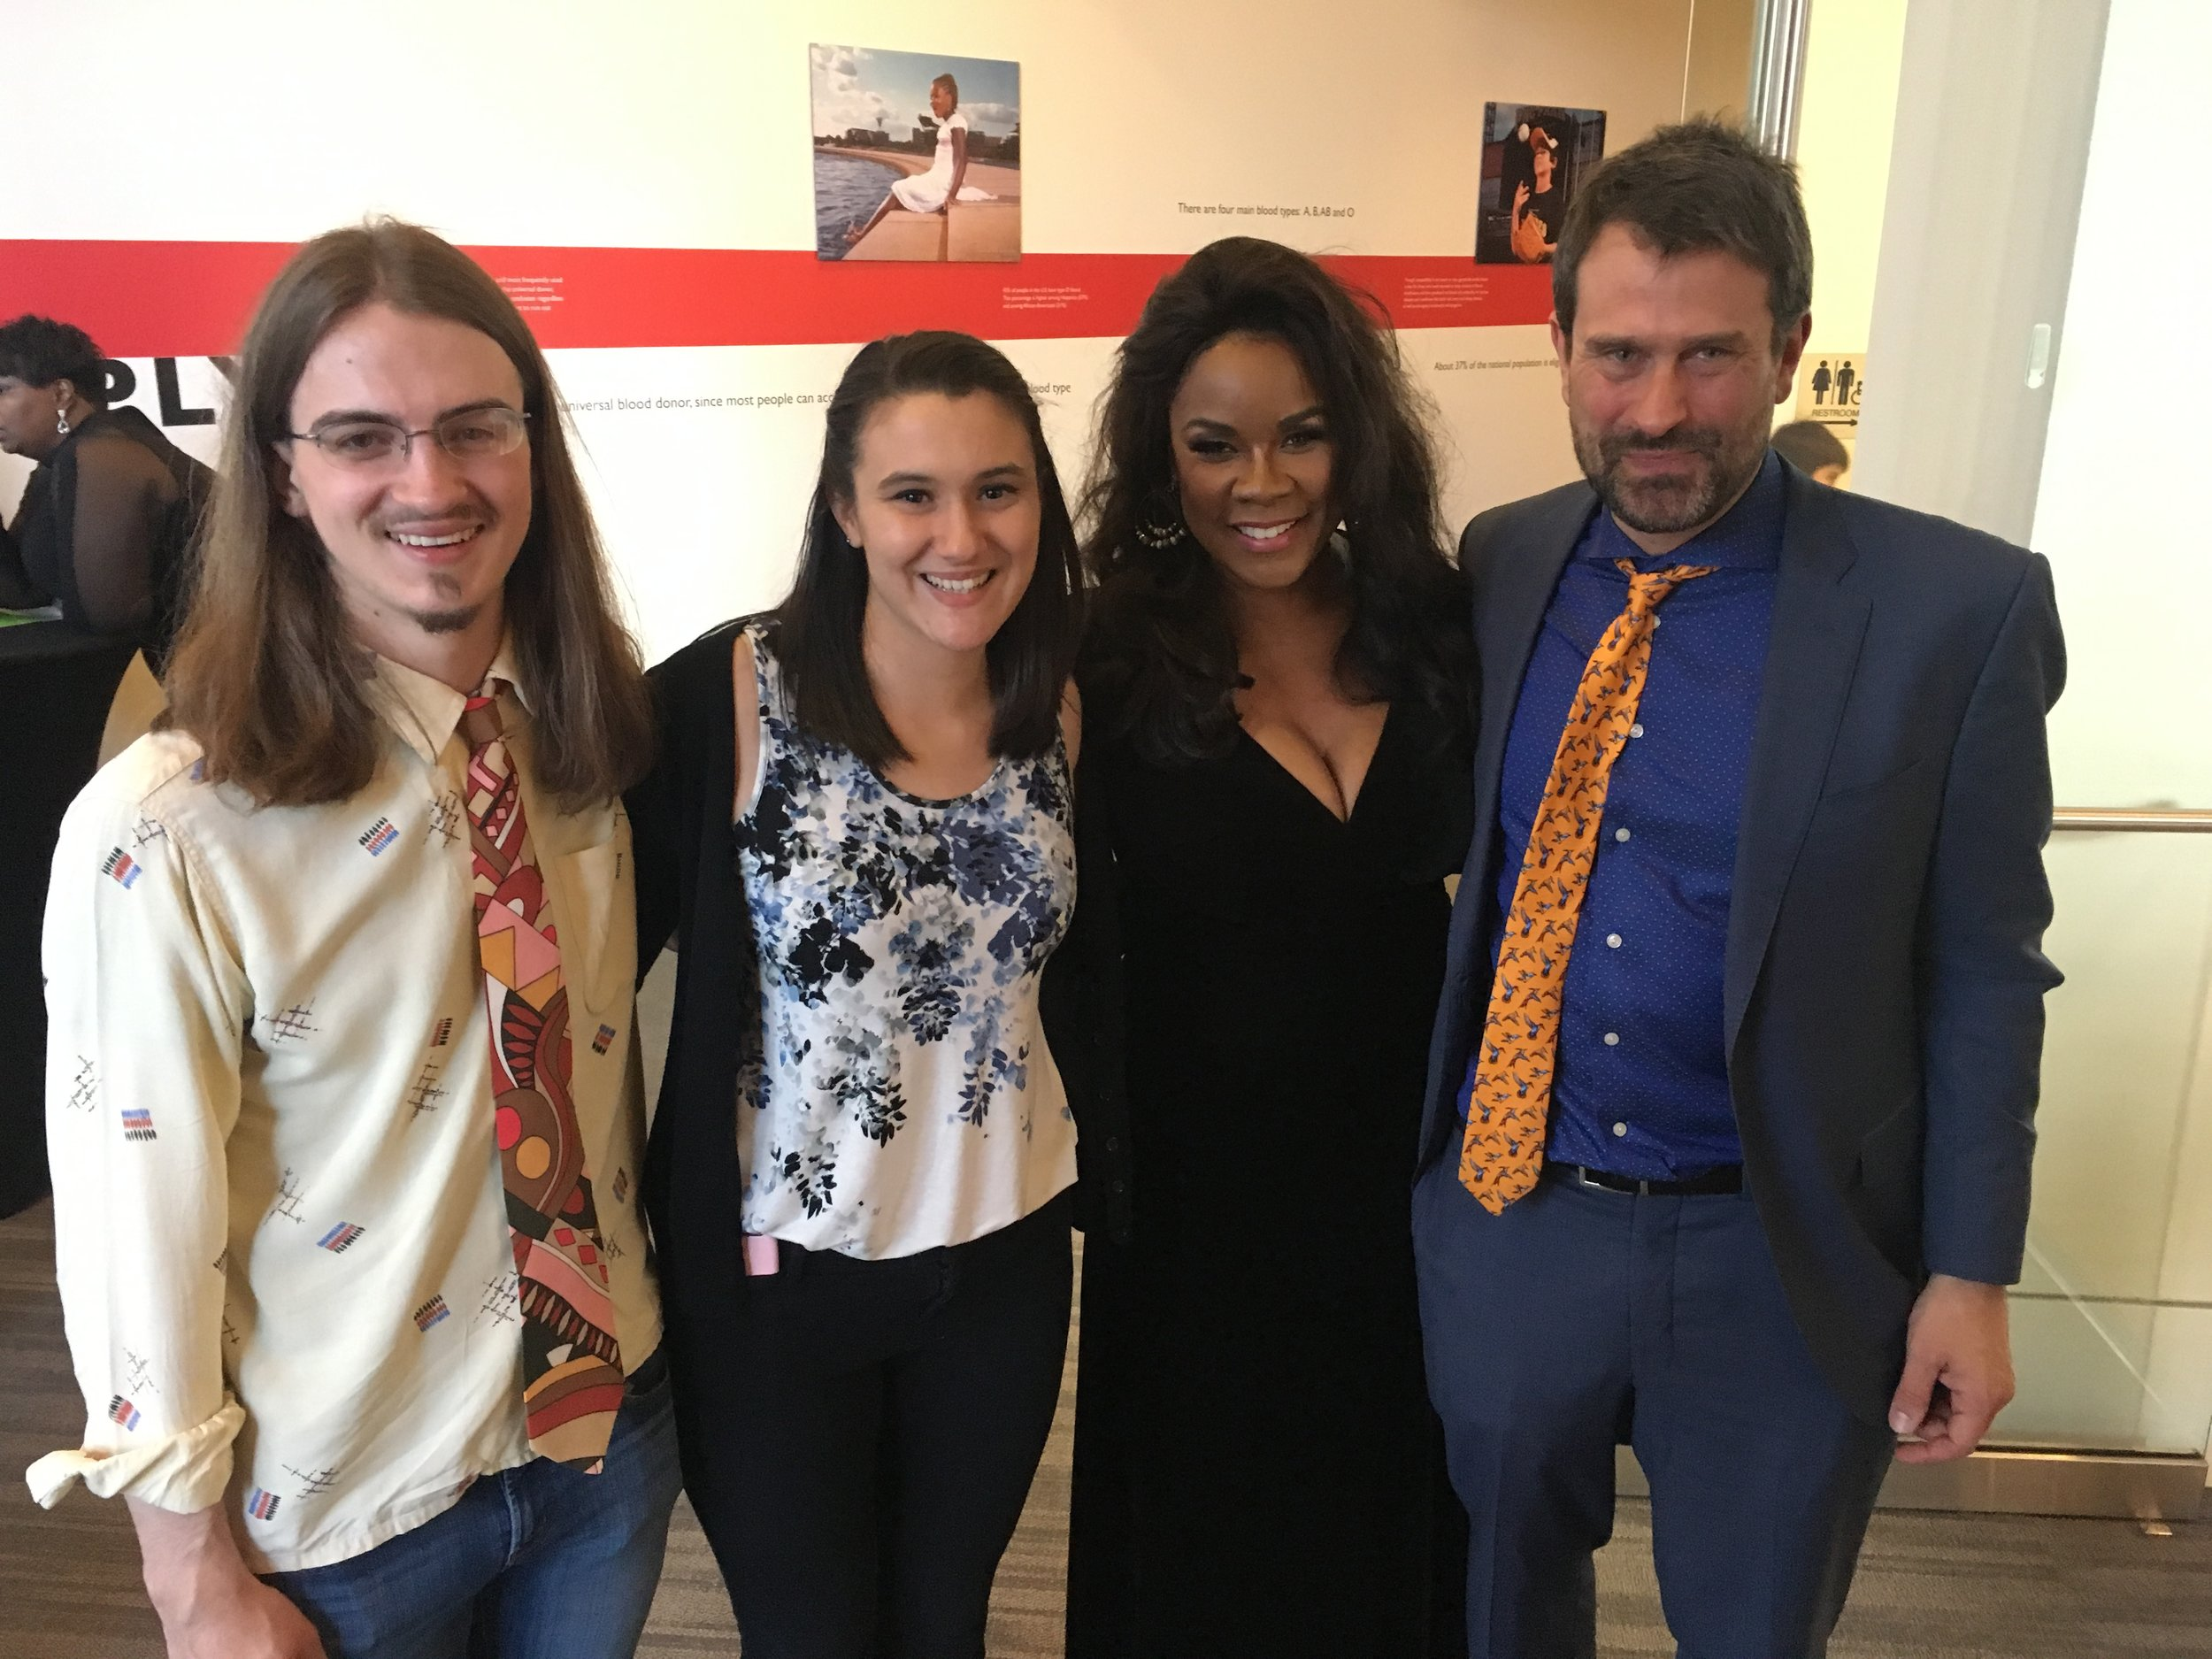 From left: Clarke, singer Ali Sarnacchiaro, singer Denyce Graves (after her performance in The Summer King), and Dan Sonenberg (composer of The Summer King)